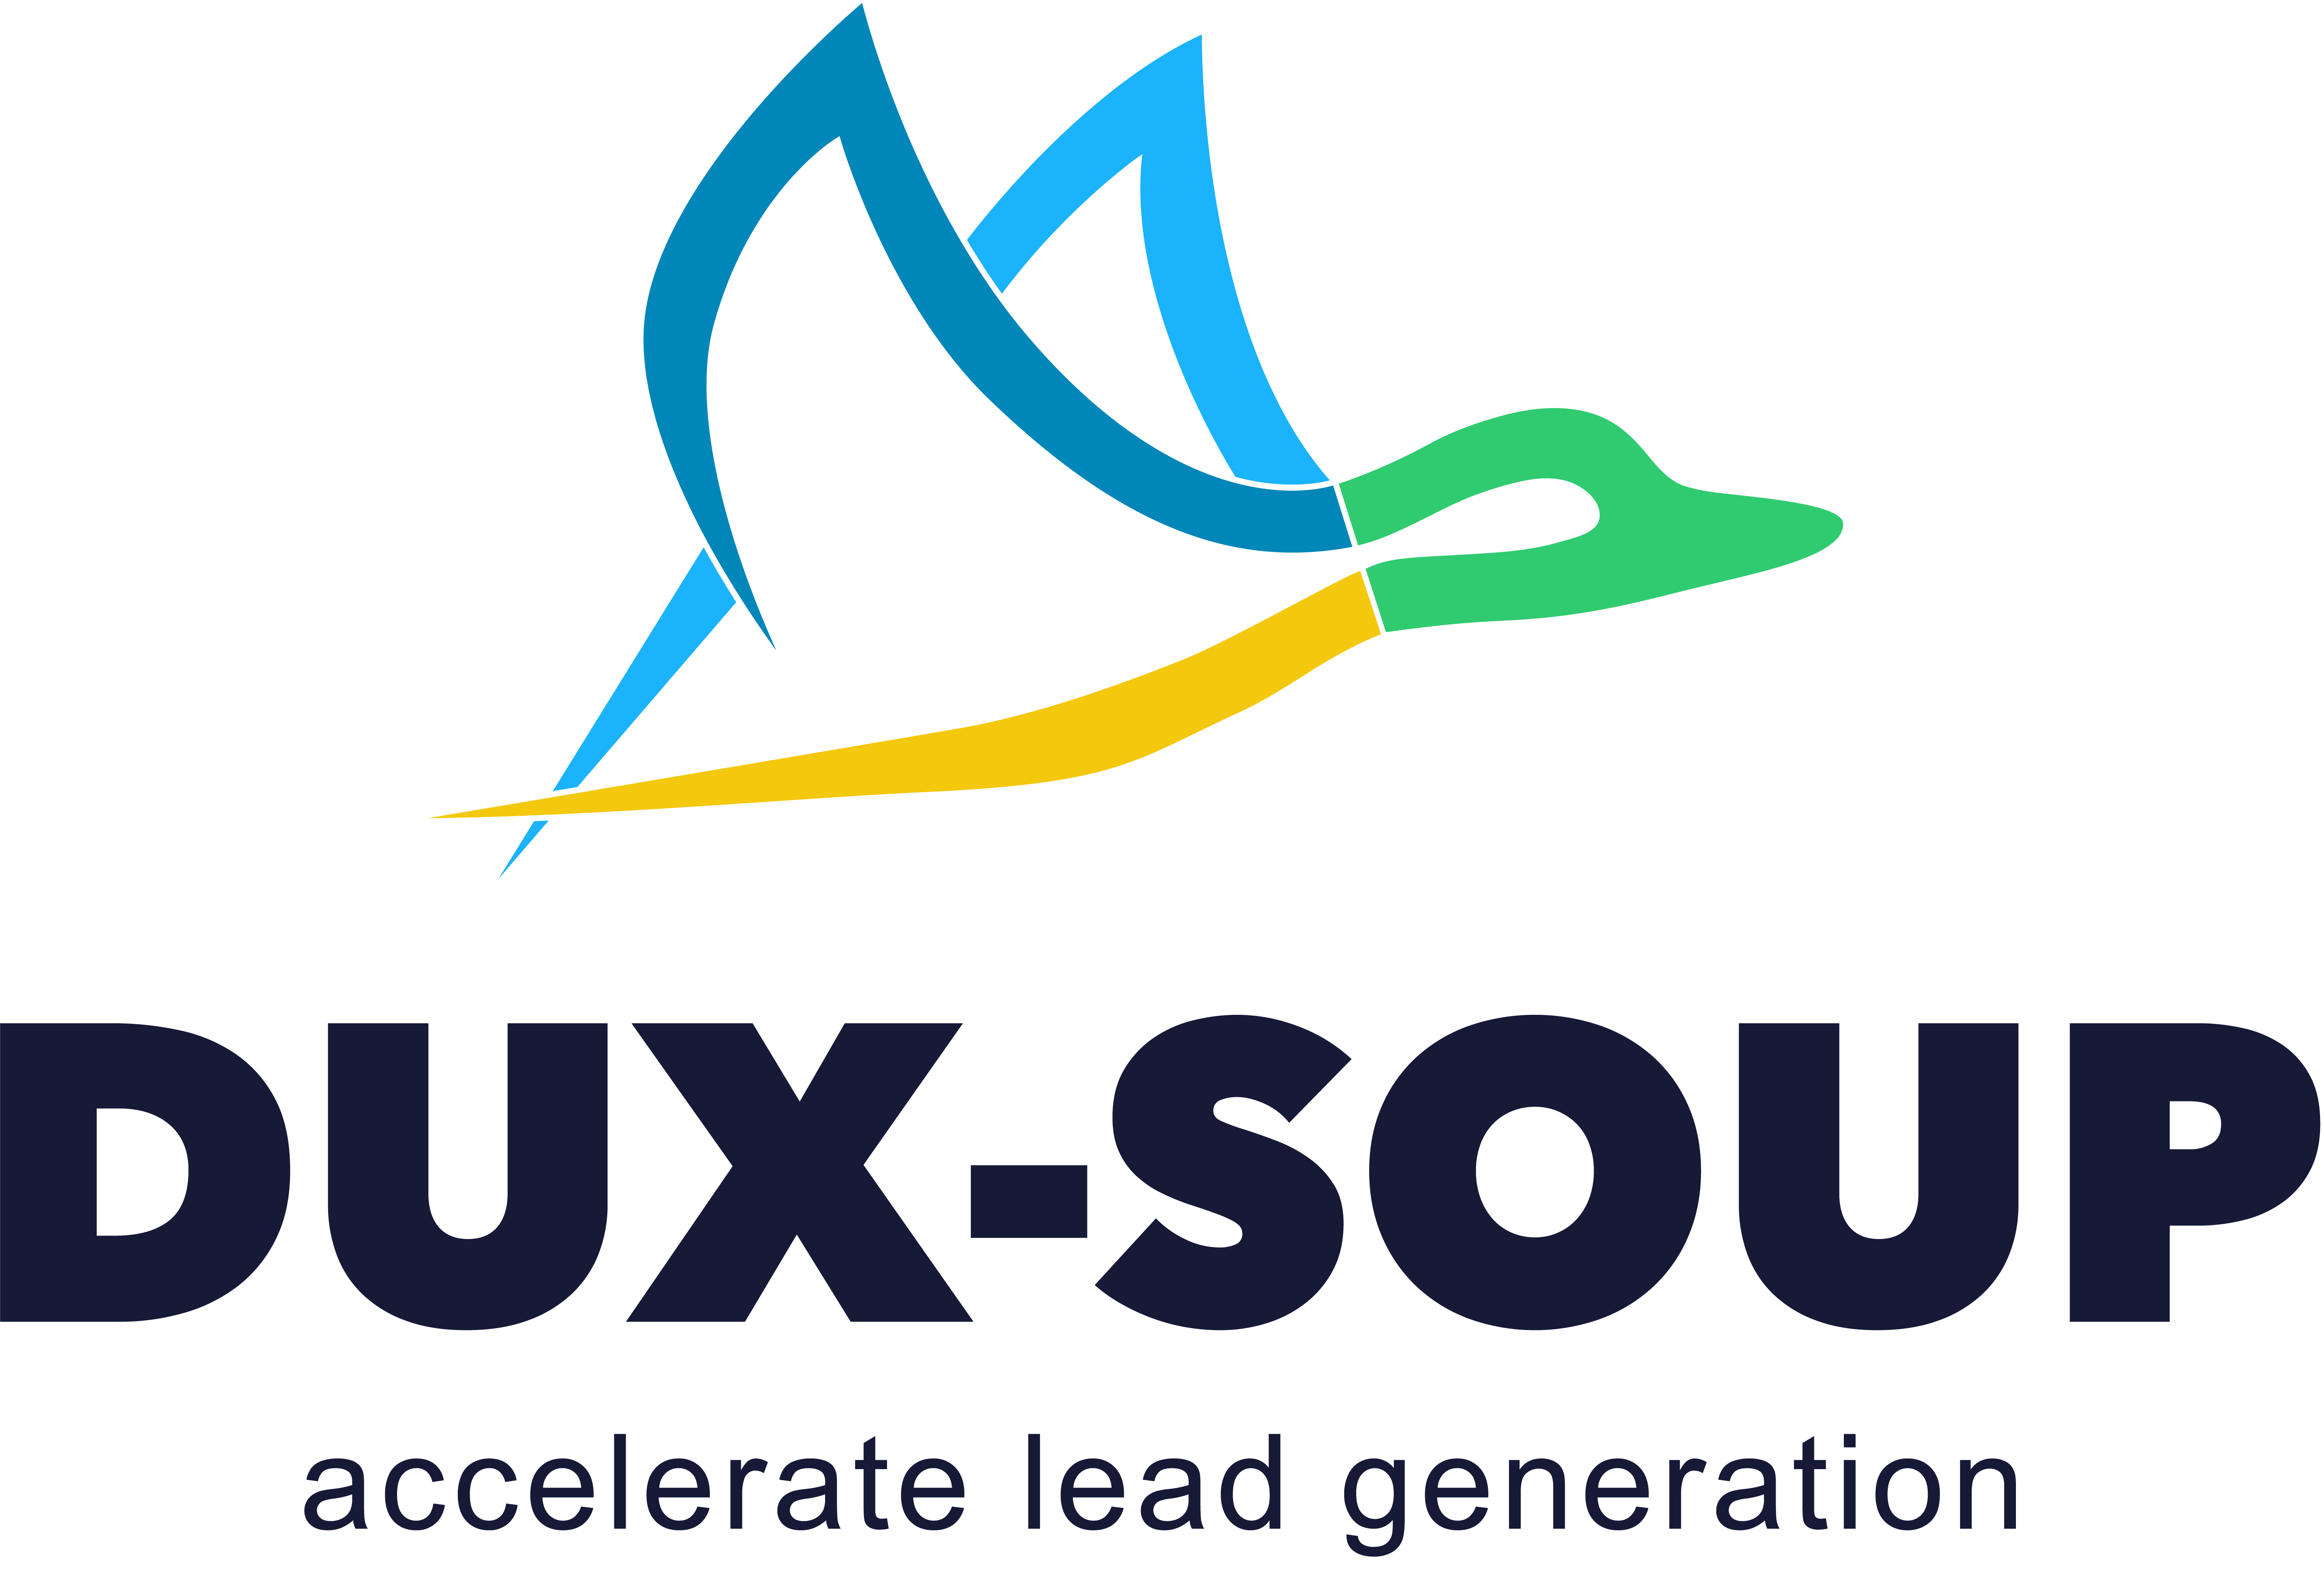 Dux-soup logo with tag line accelerate lead generation